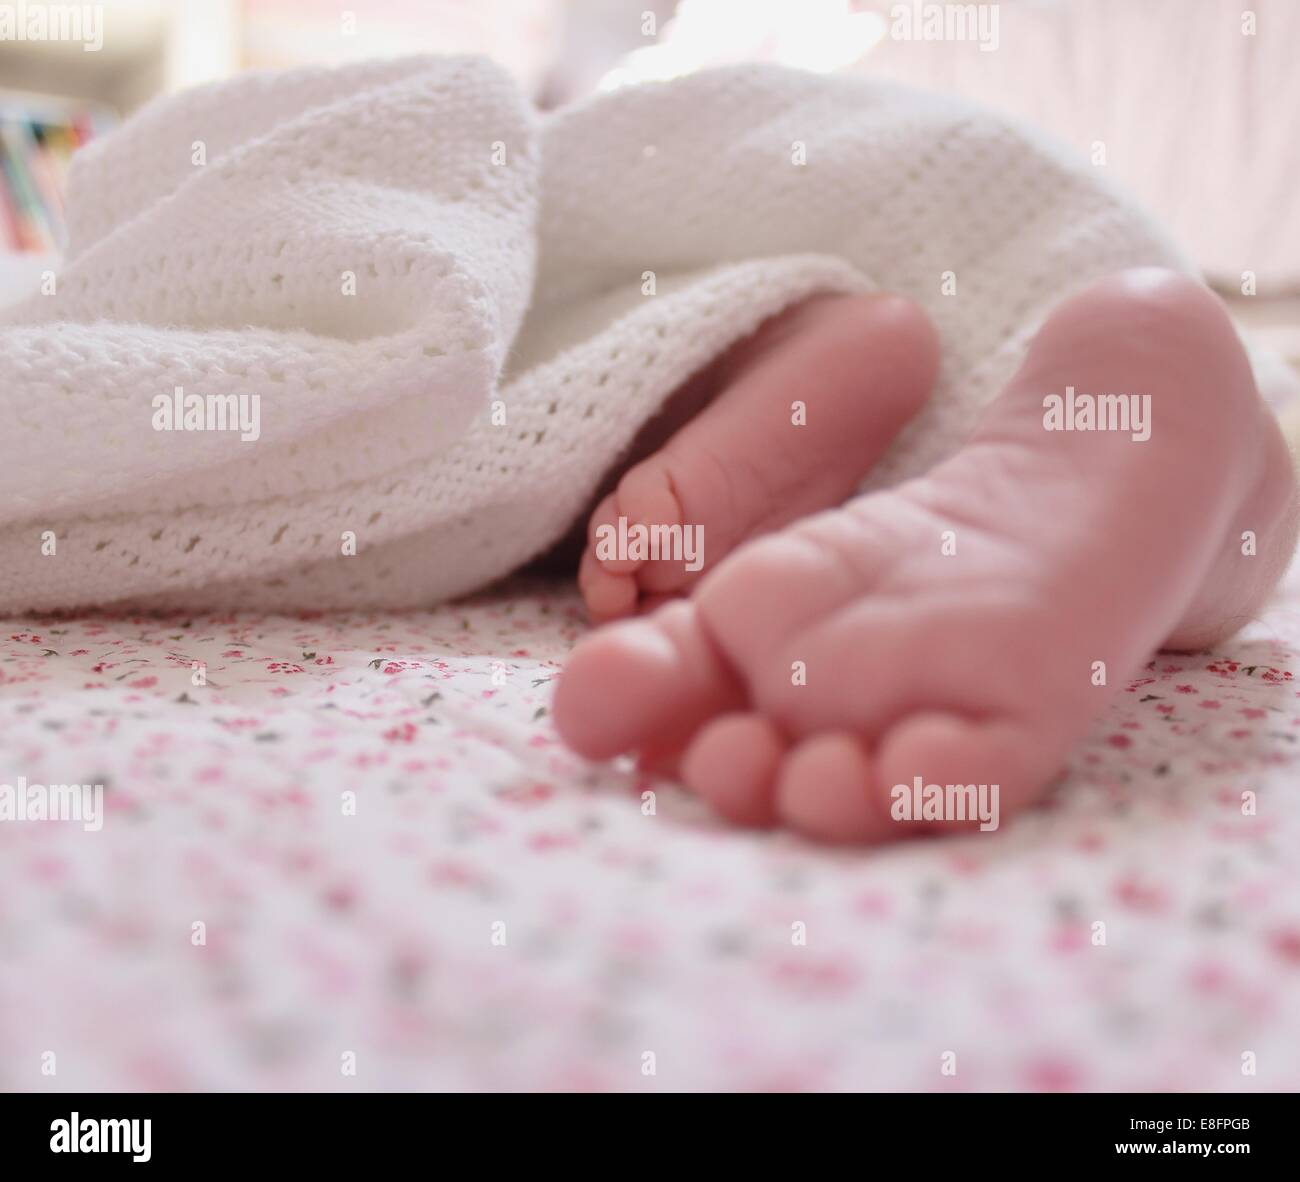 Close-up of baby girl's feet - Stock Image